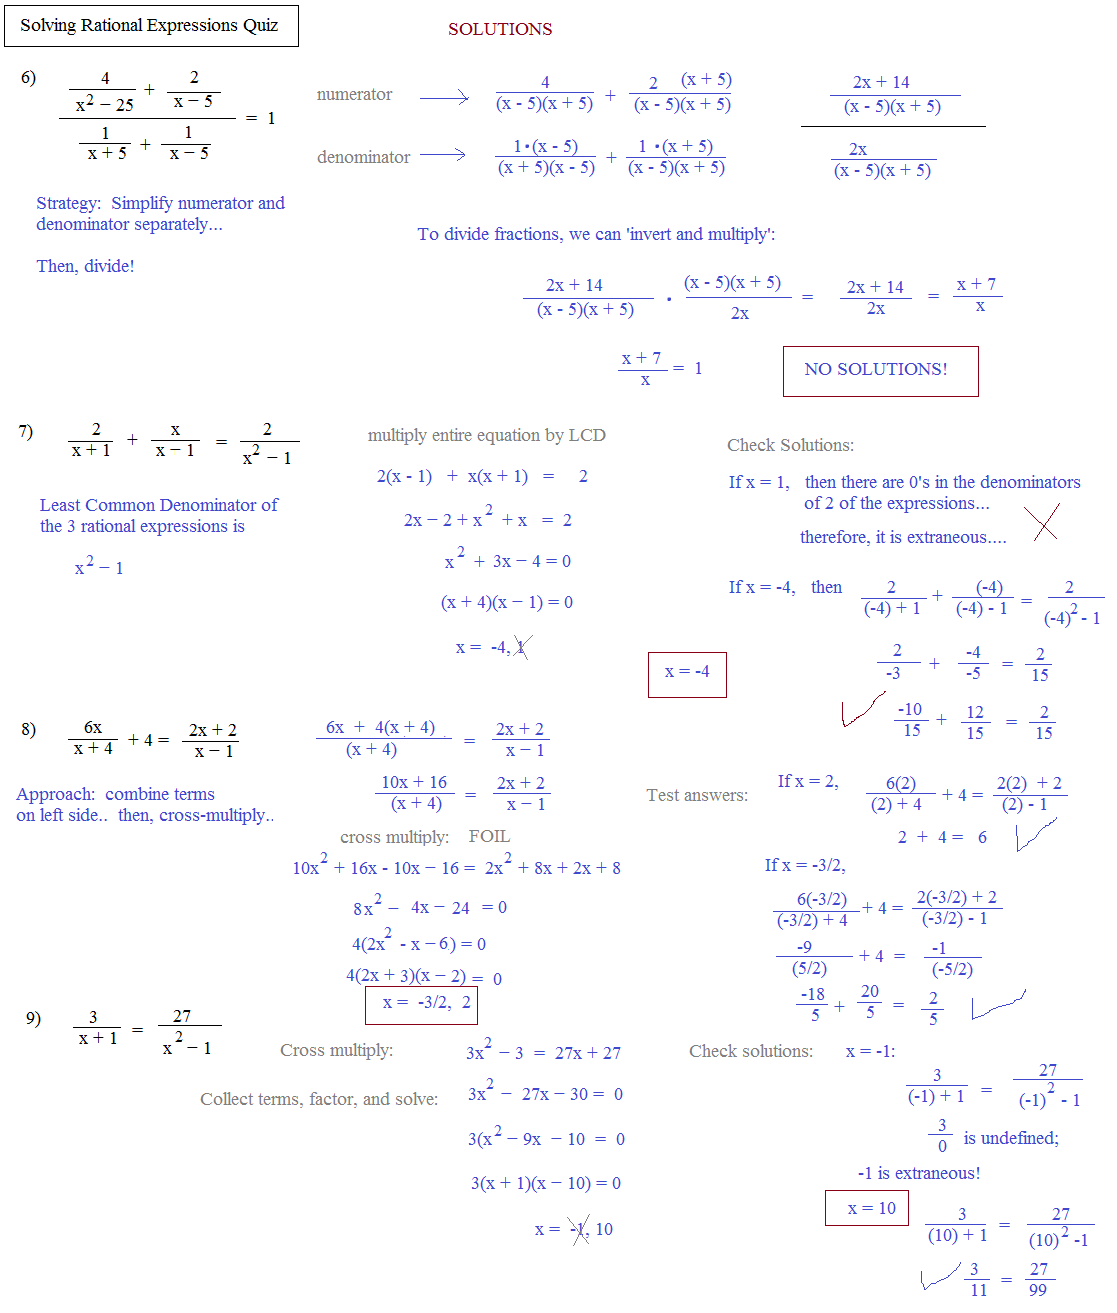 Worksheets Algebra 2 Solving Equations Worksheet math plane solving rational equations expressions quiz page 2 solutions equations